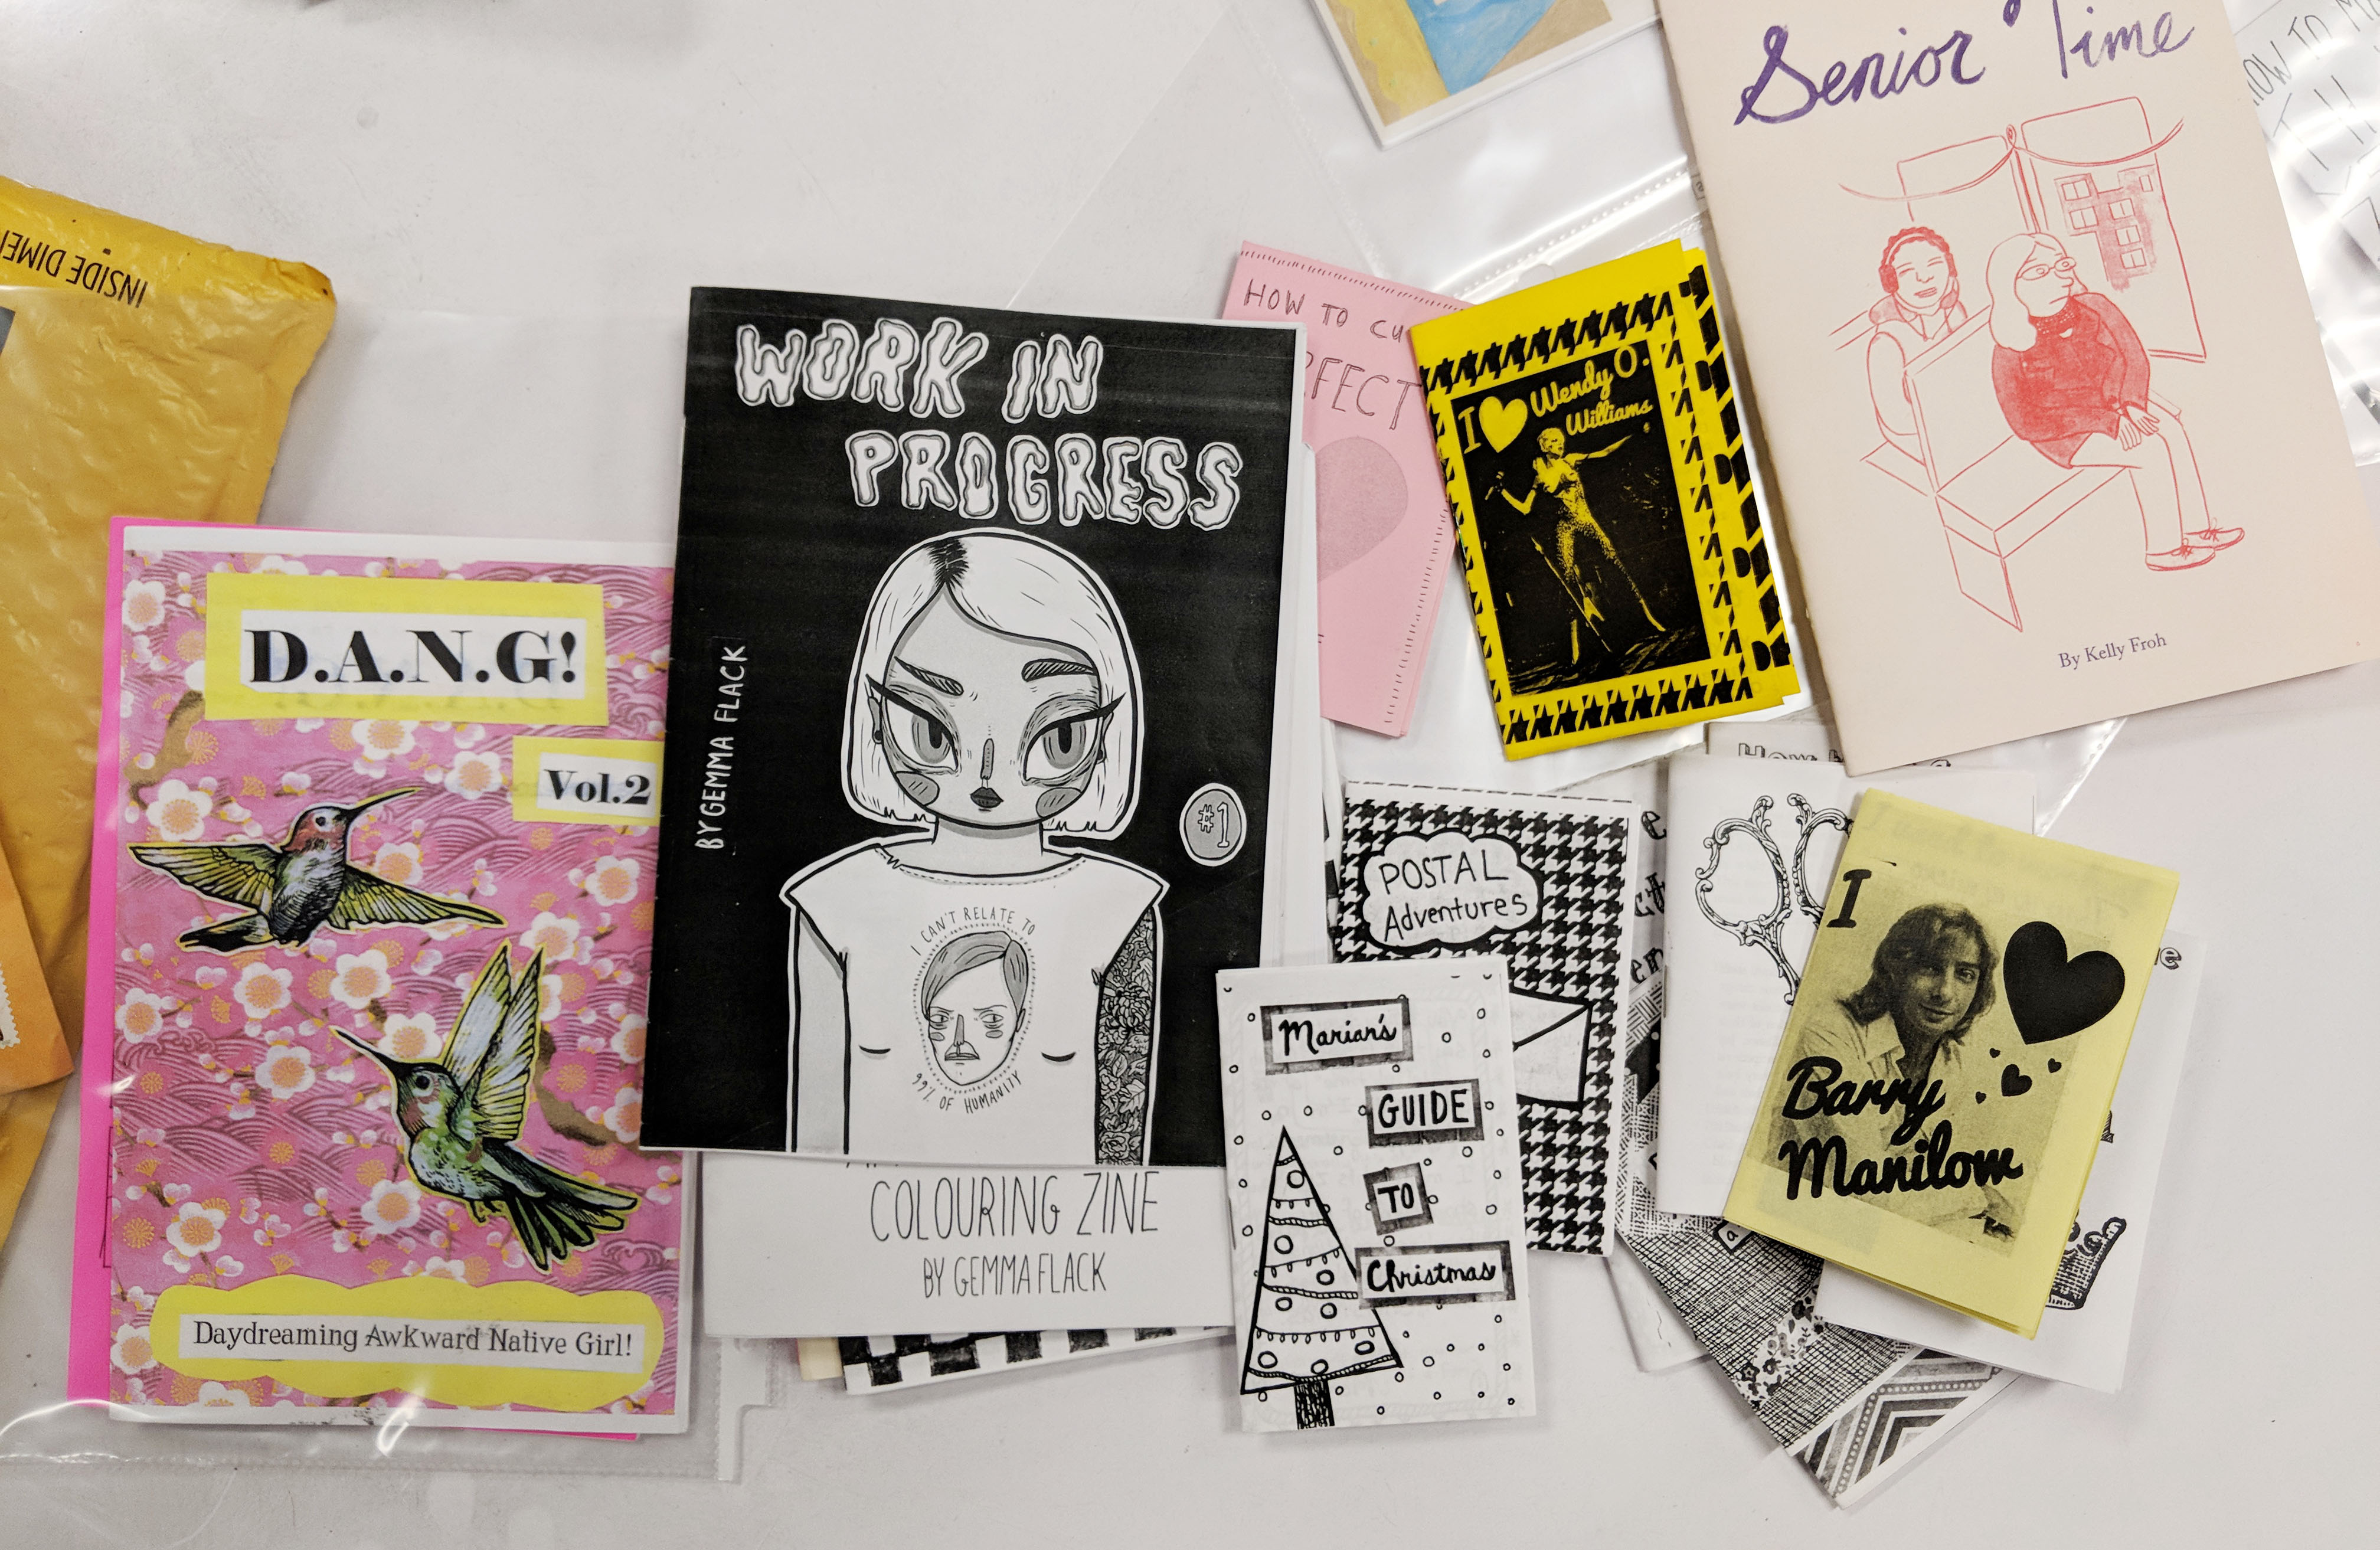 A selection of zines from Kelly Wooten's workshop at the NCSU Libraries.